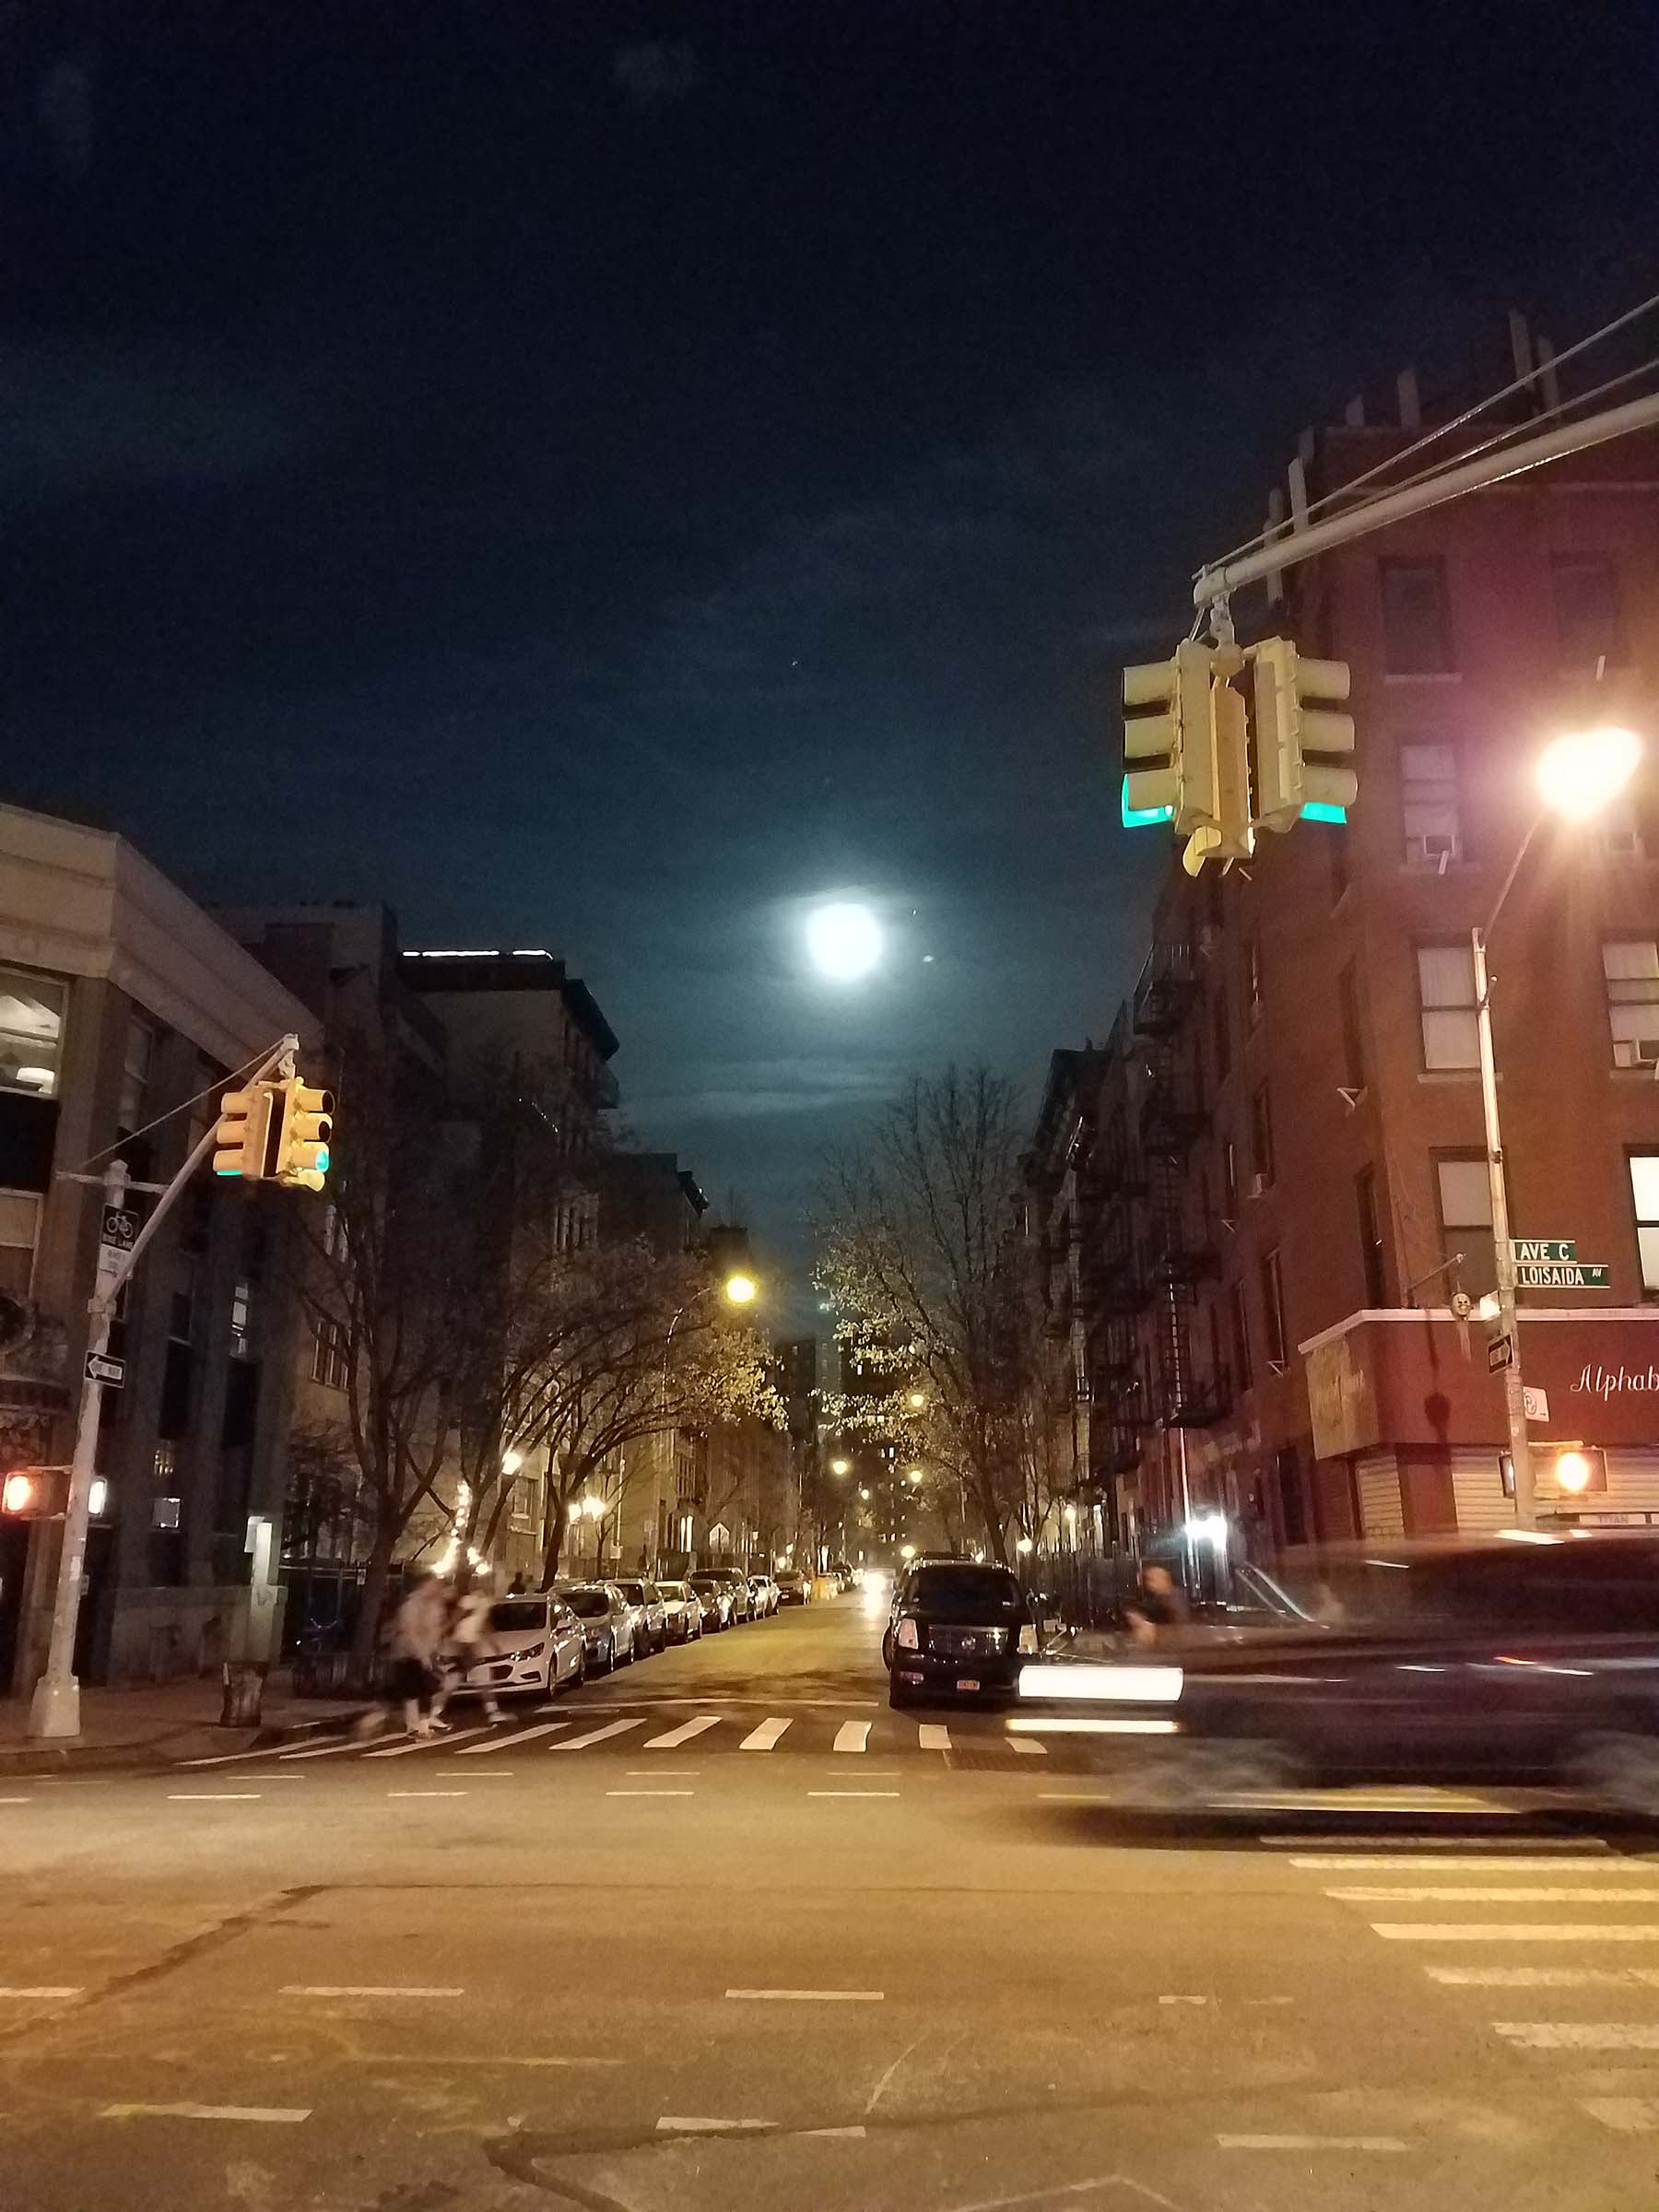 Photo of the moon at night, taken at a street intersection, and looking straight down a road. A car or truck is blurred by its own movement as it crosses the foreground.